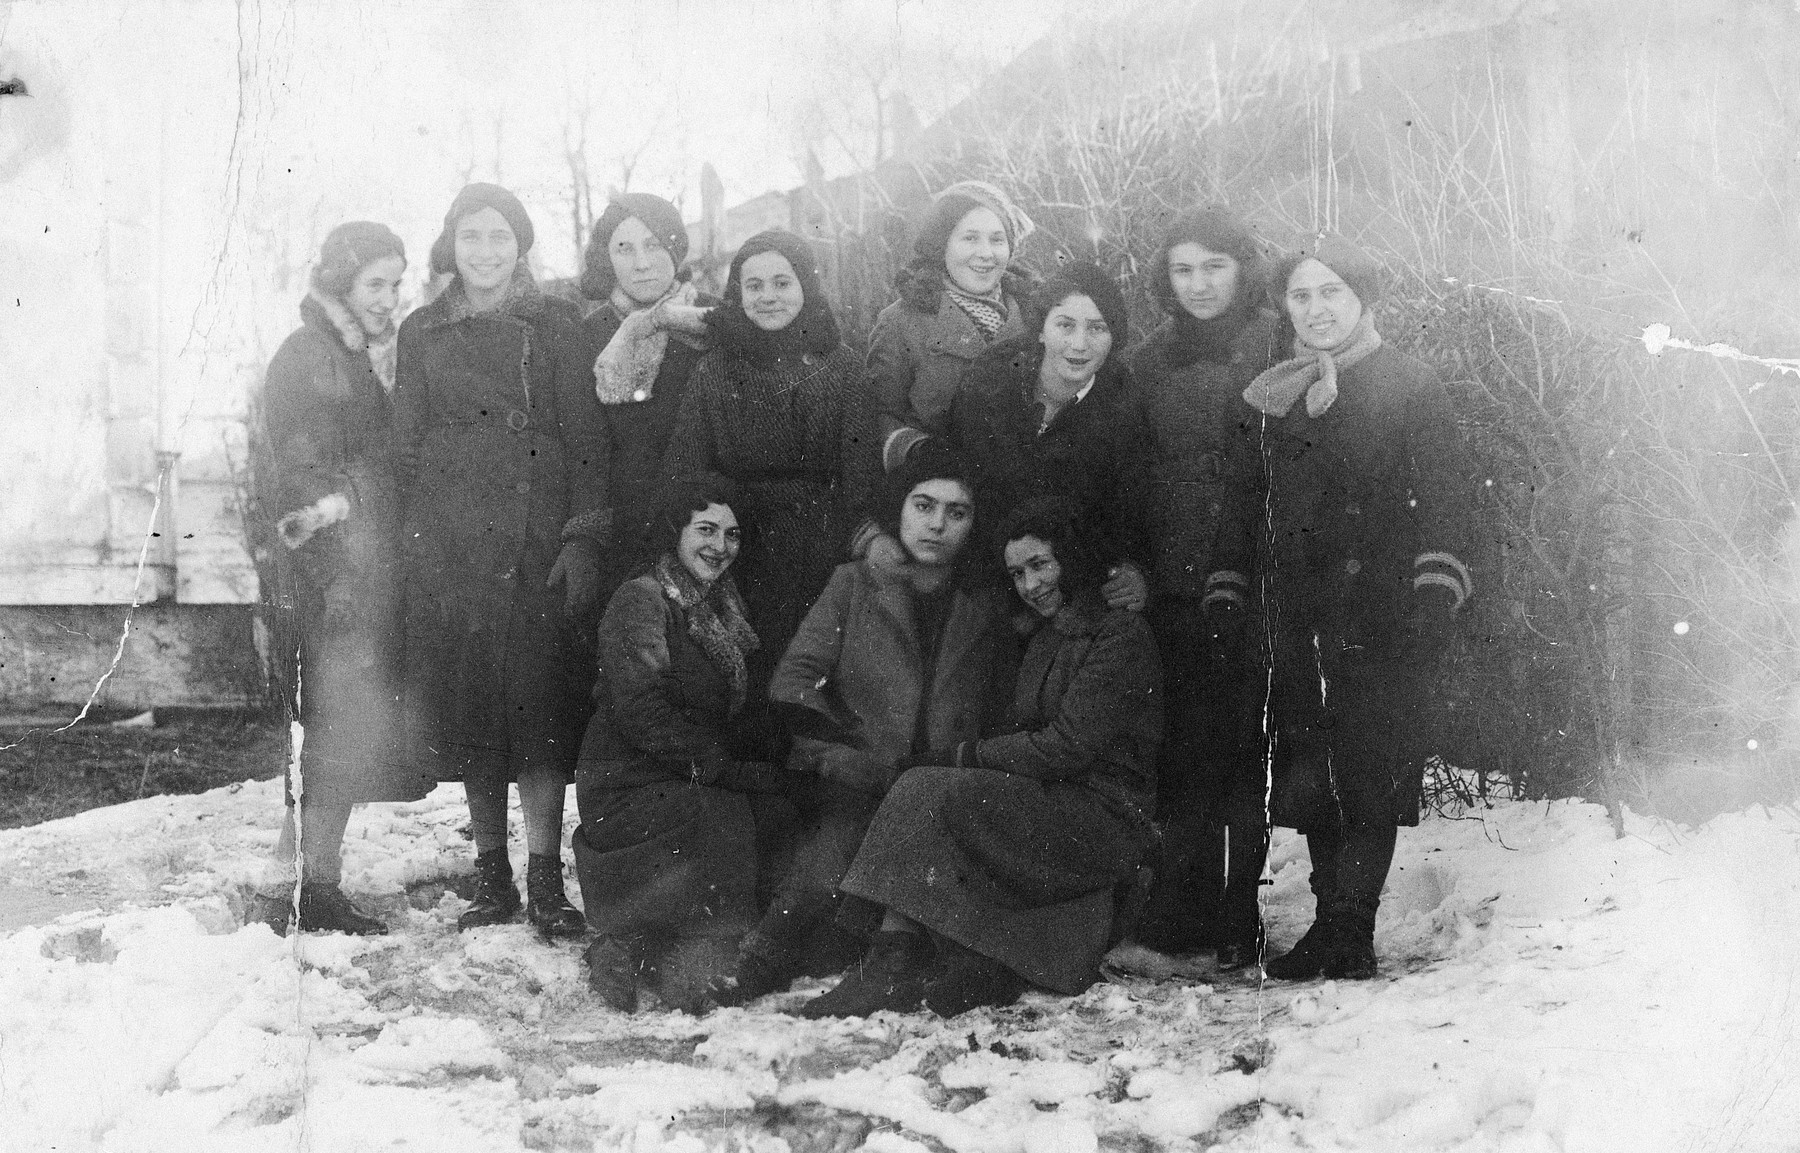 Faiga Rosenbluth (standing on the right) with a group of girl friends from a Zionist youth movement in Kanczuga, Poland.  The donor was the sole survivor.  Faiga is the daughter of Bertha and Izak Rosenbluth of Kanczuga.  During the war she was deported to Stutthof.  Most of her family was killed in Kanczuga.